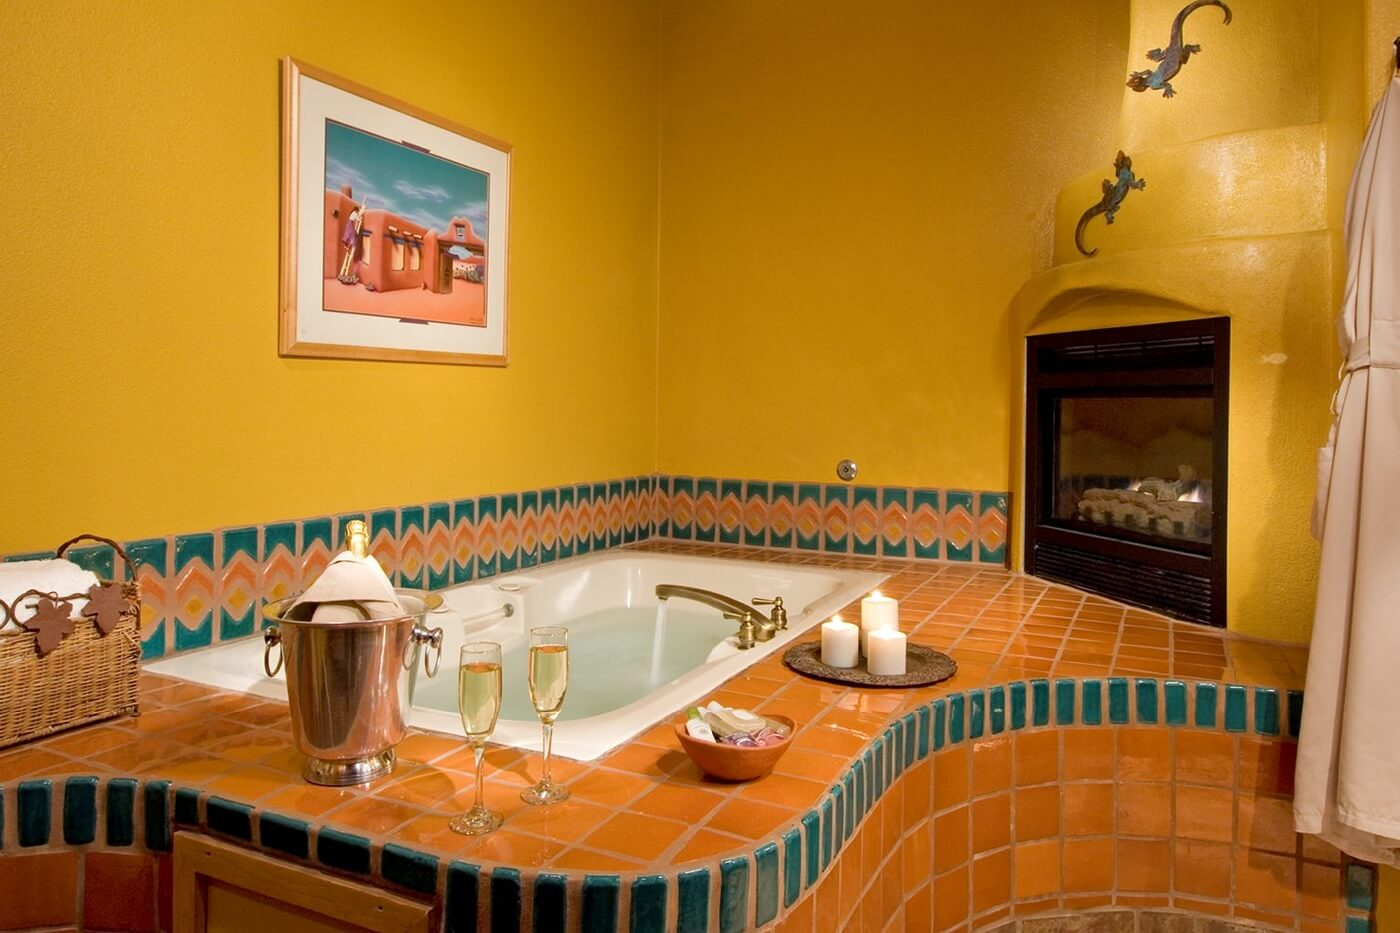 Oversized jetted bath tub with candle lit fireplace